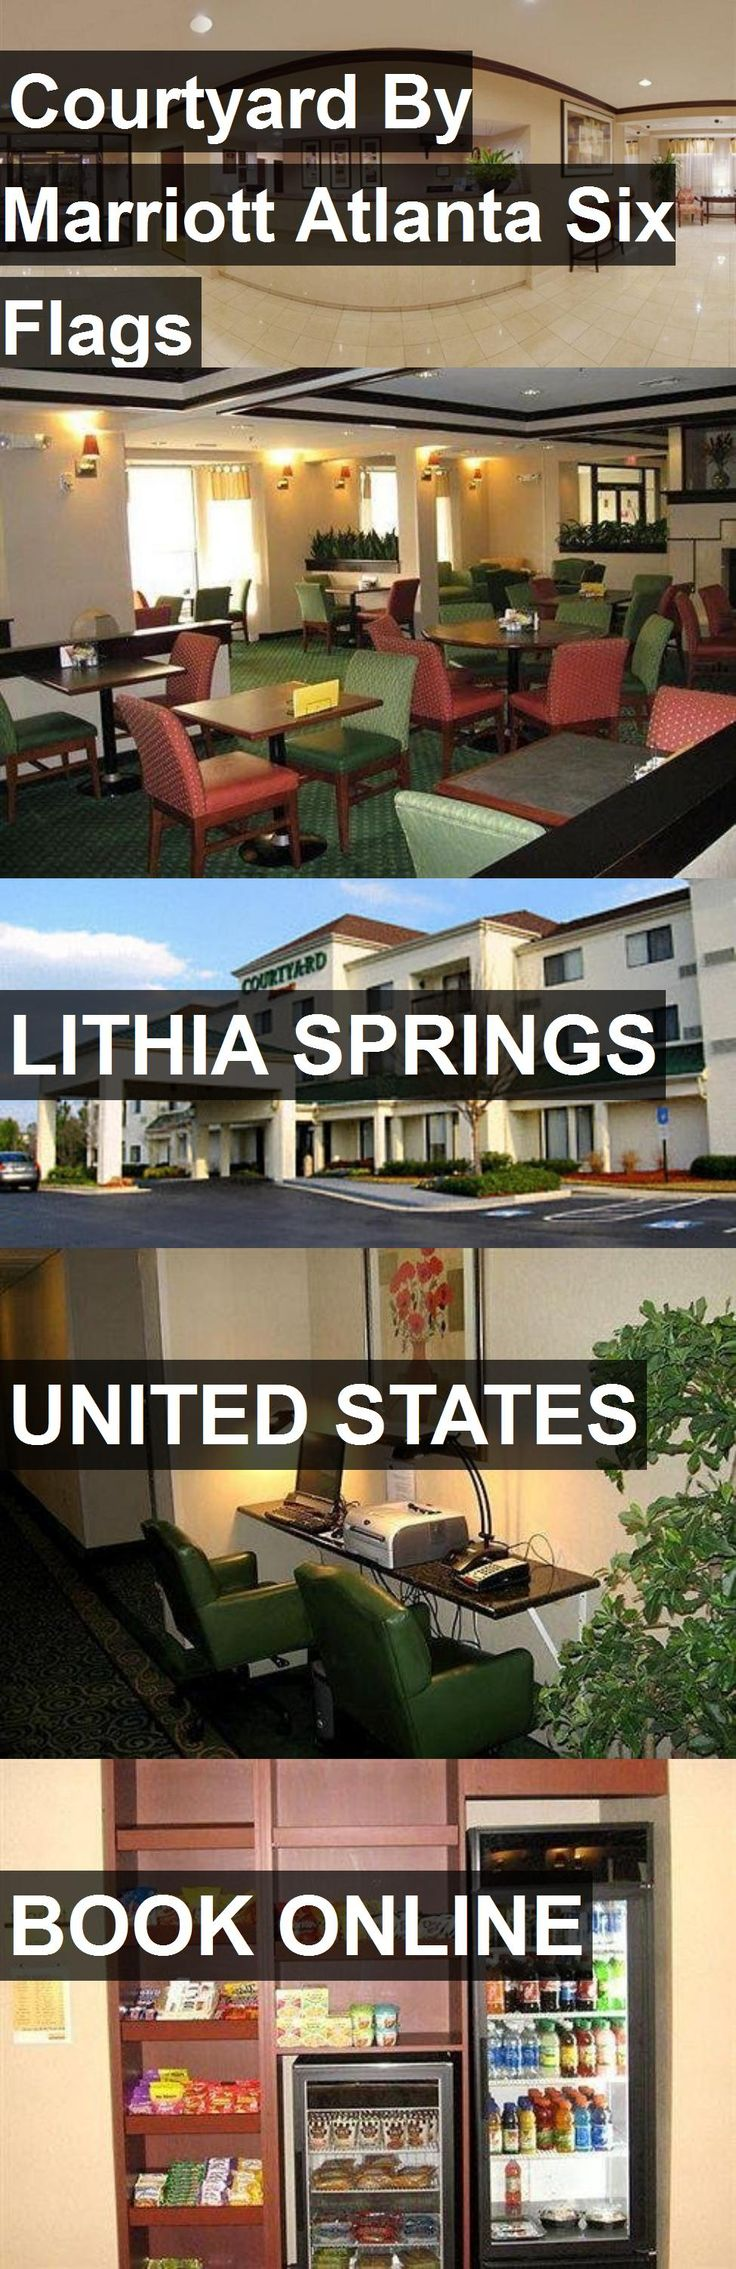 Hotel Courtyard By Marriott Atlanta Six Flags in Lithia Springs, United States. For more information, photos, reviews and best prices please follow the link. #UnitedStates #LithiaSprings #travel #vacation #hotel